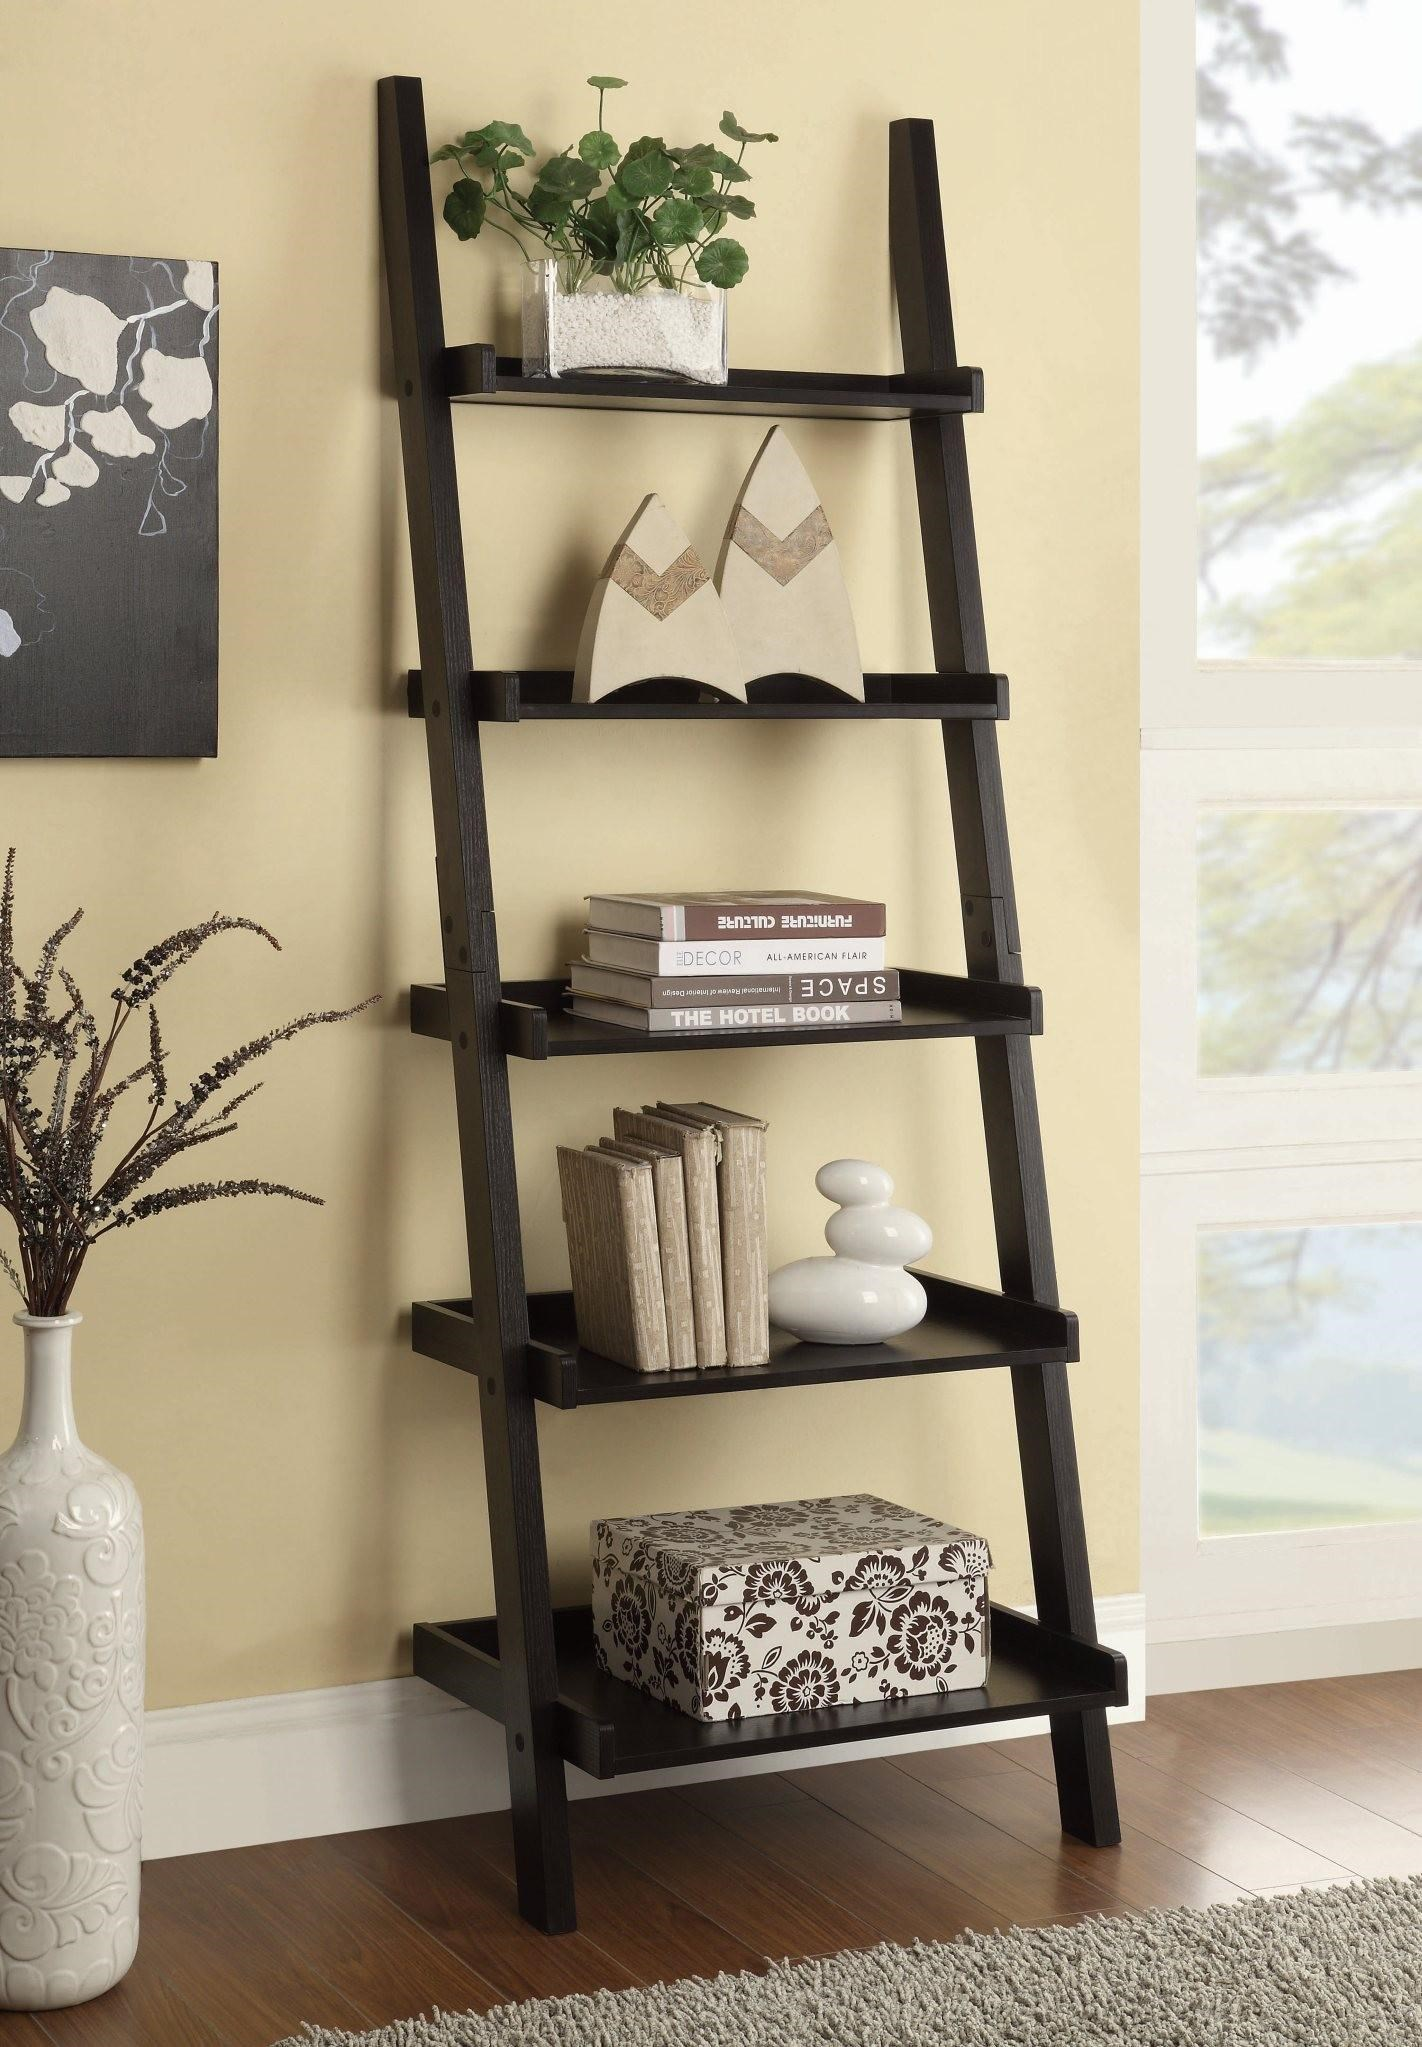 Bookcases Cappuccino Ladder Bookcase With 5 Shelves. Part Of The Bookcases  Collection By Coaster